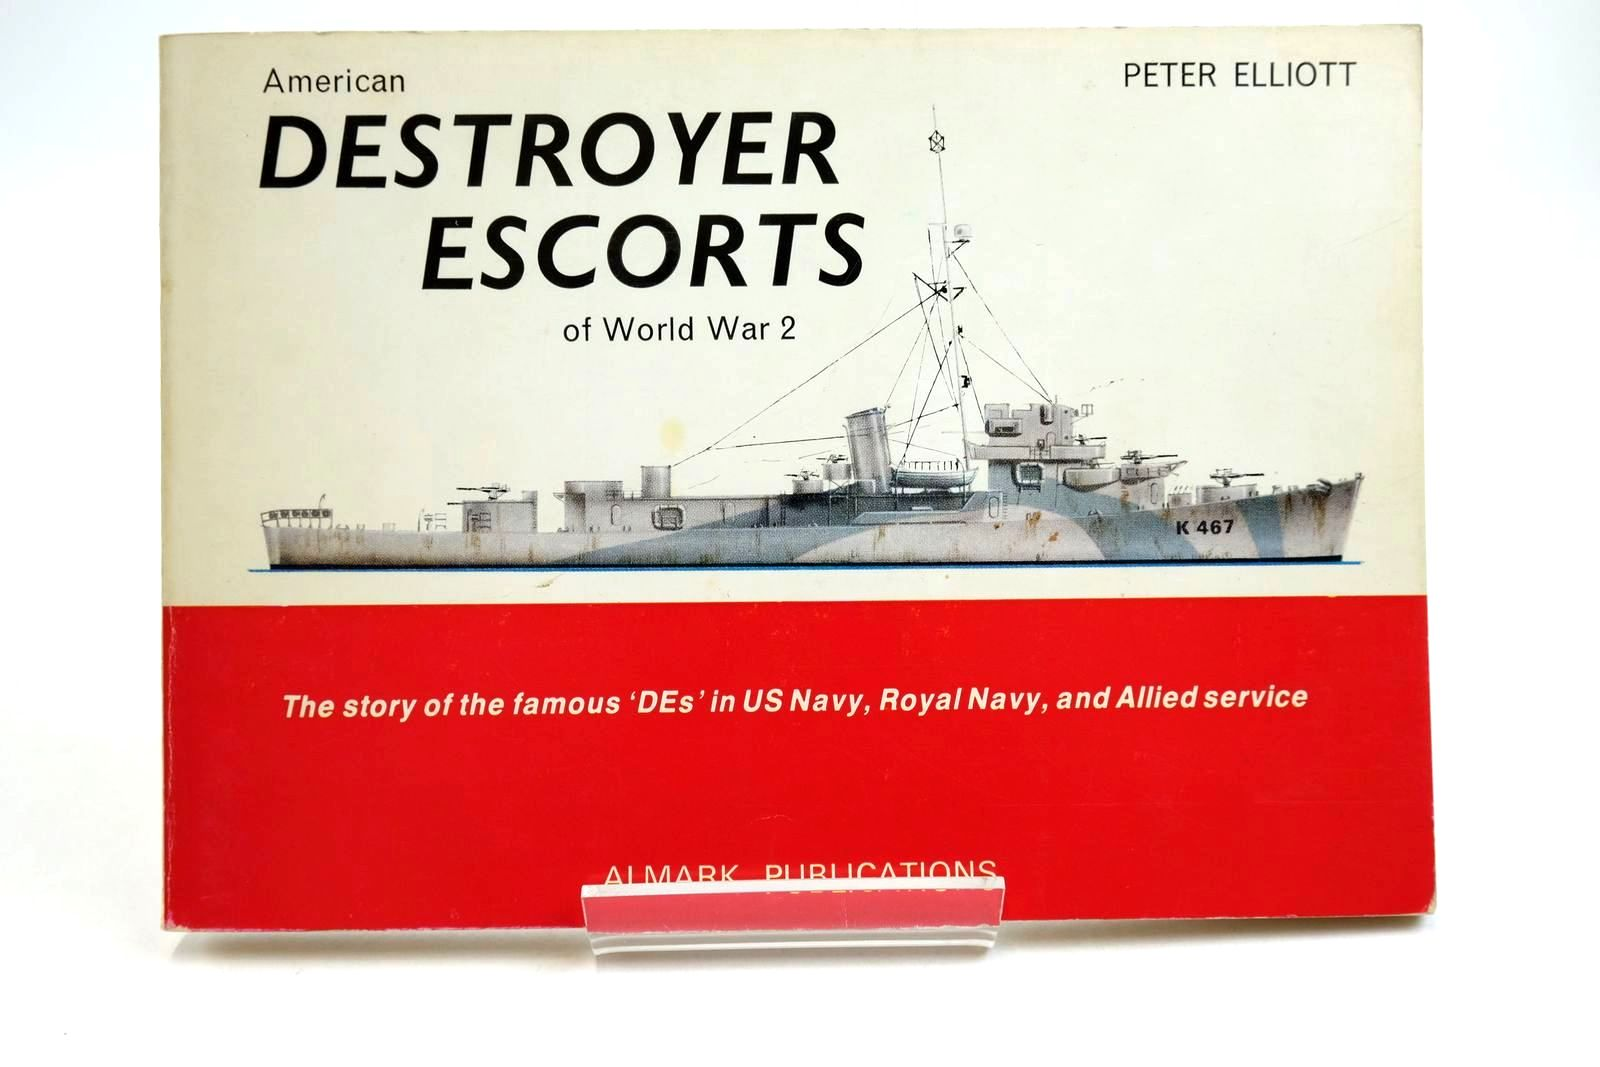 Photo of AMERICAN DESTROYER ESCORTS OF WORLD WAR 2 written by Elliott, Peter published by Almark Publishing Co. Ltd. (STOCK CODE: 2134480)  for sale by Stella & Rose's Books